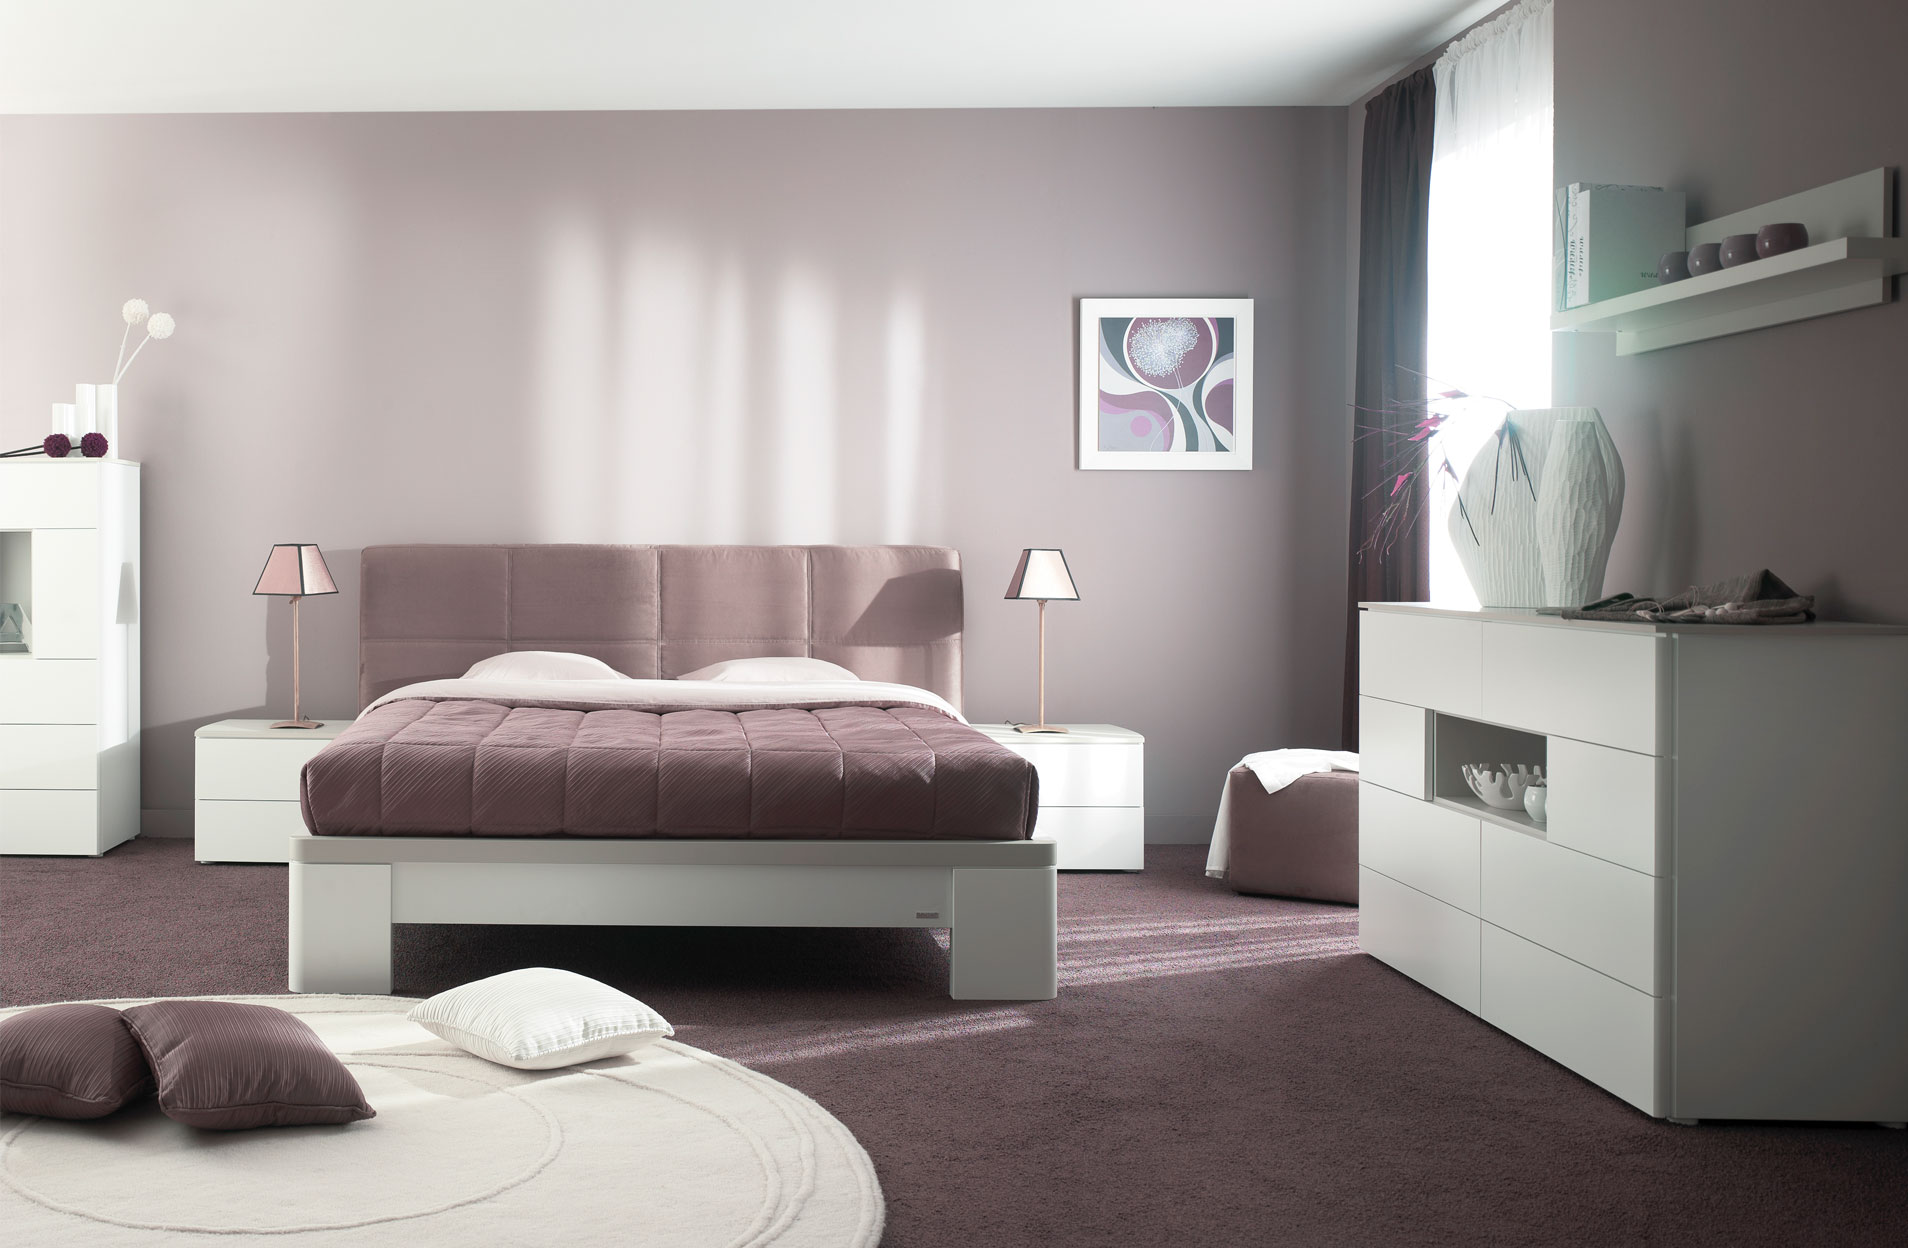 Inspiration d coration de chambre contemporaine gautier opalia for Deco chambre contemporaine adulte